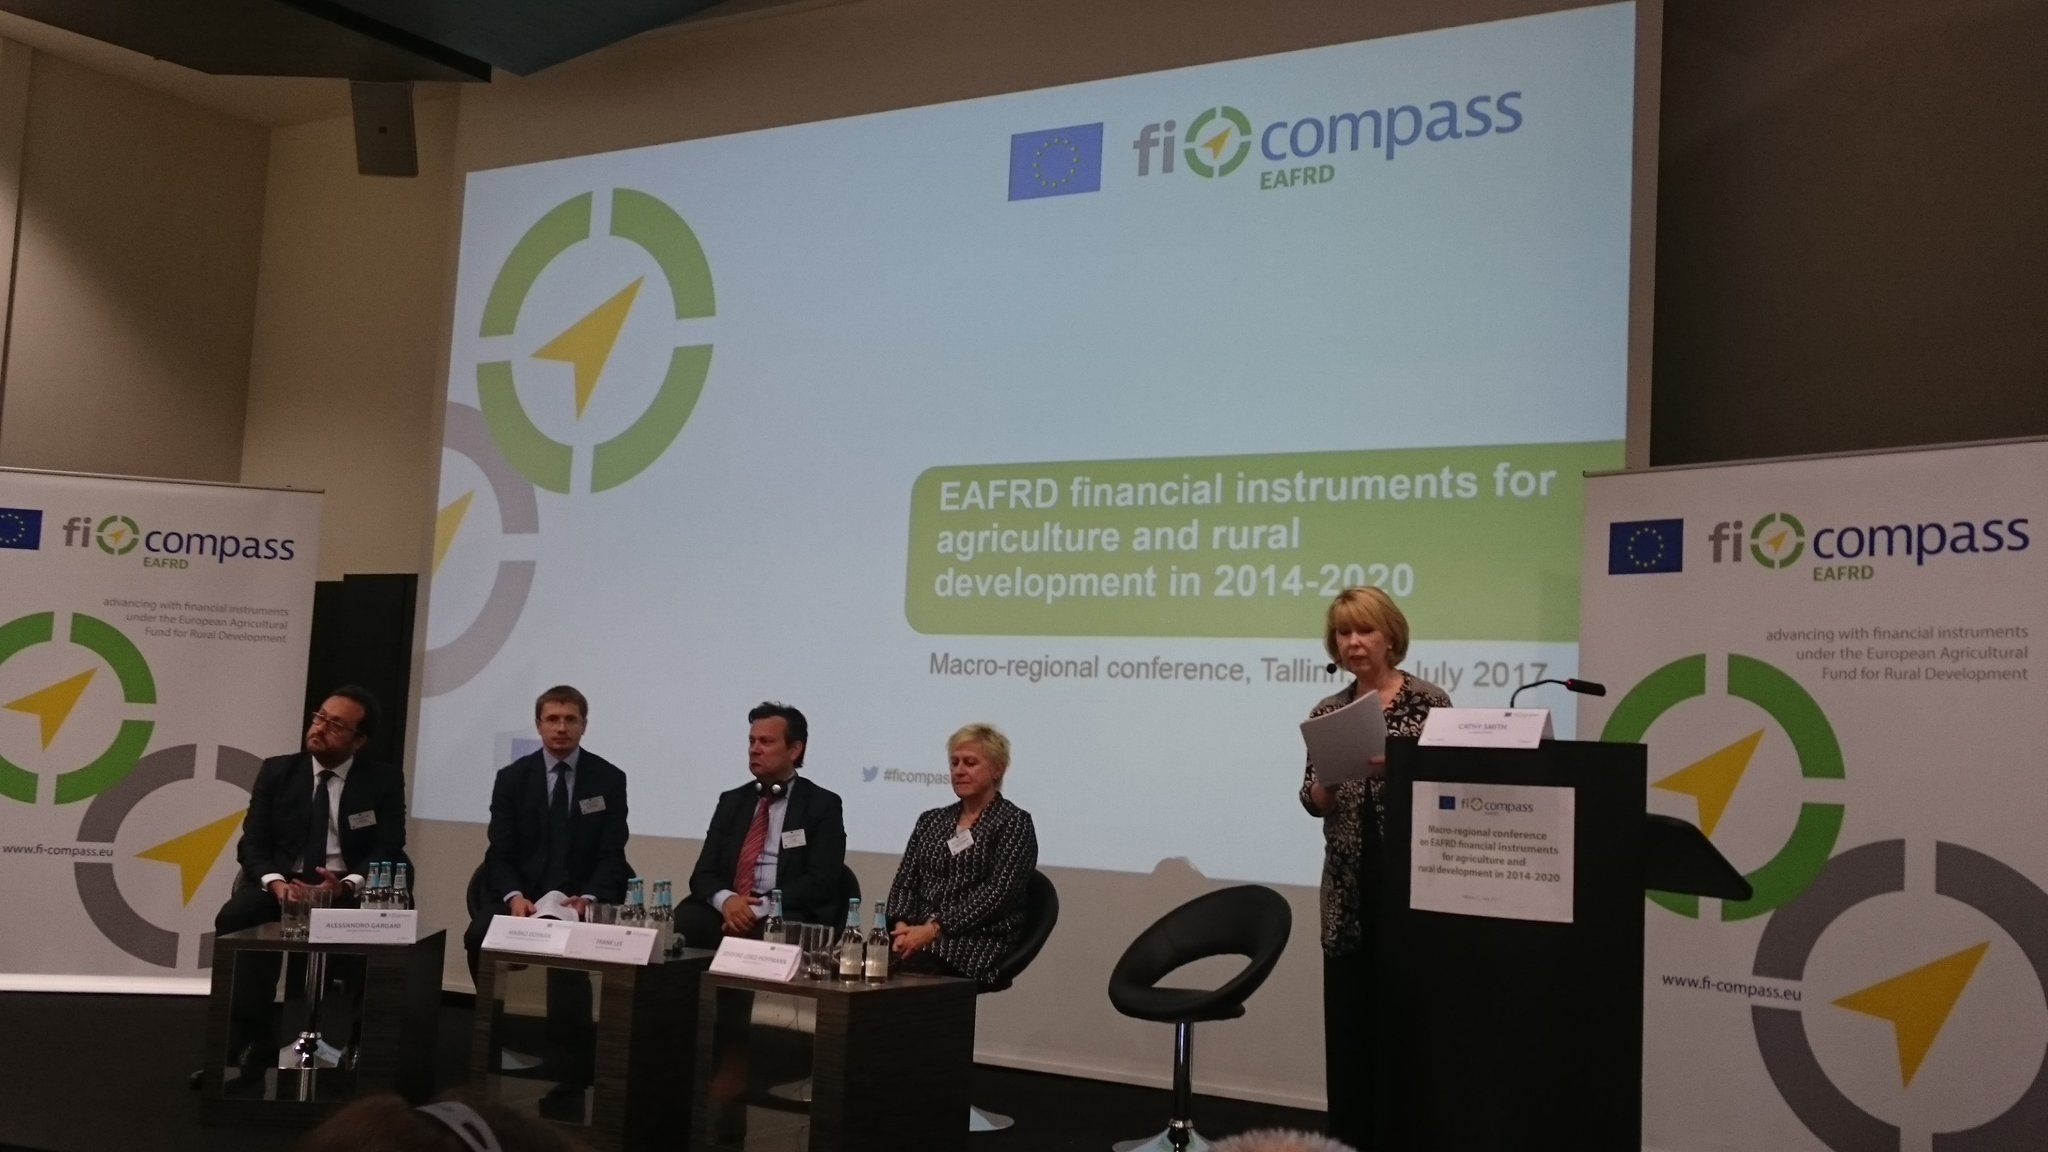 #ficompass conference in Tallinn today highlighting the opportunities of financial instruments for agriculture and rural development #EAFRD https://t.co/cjSf8xfXqM